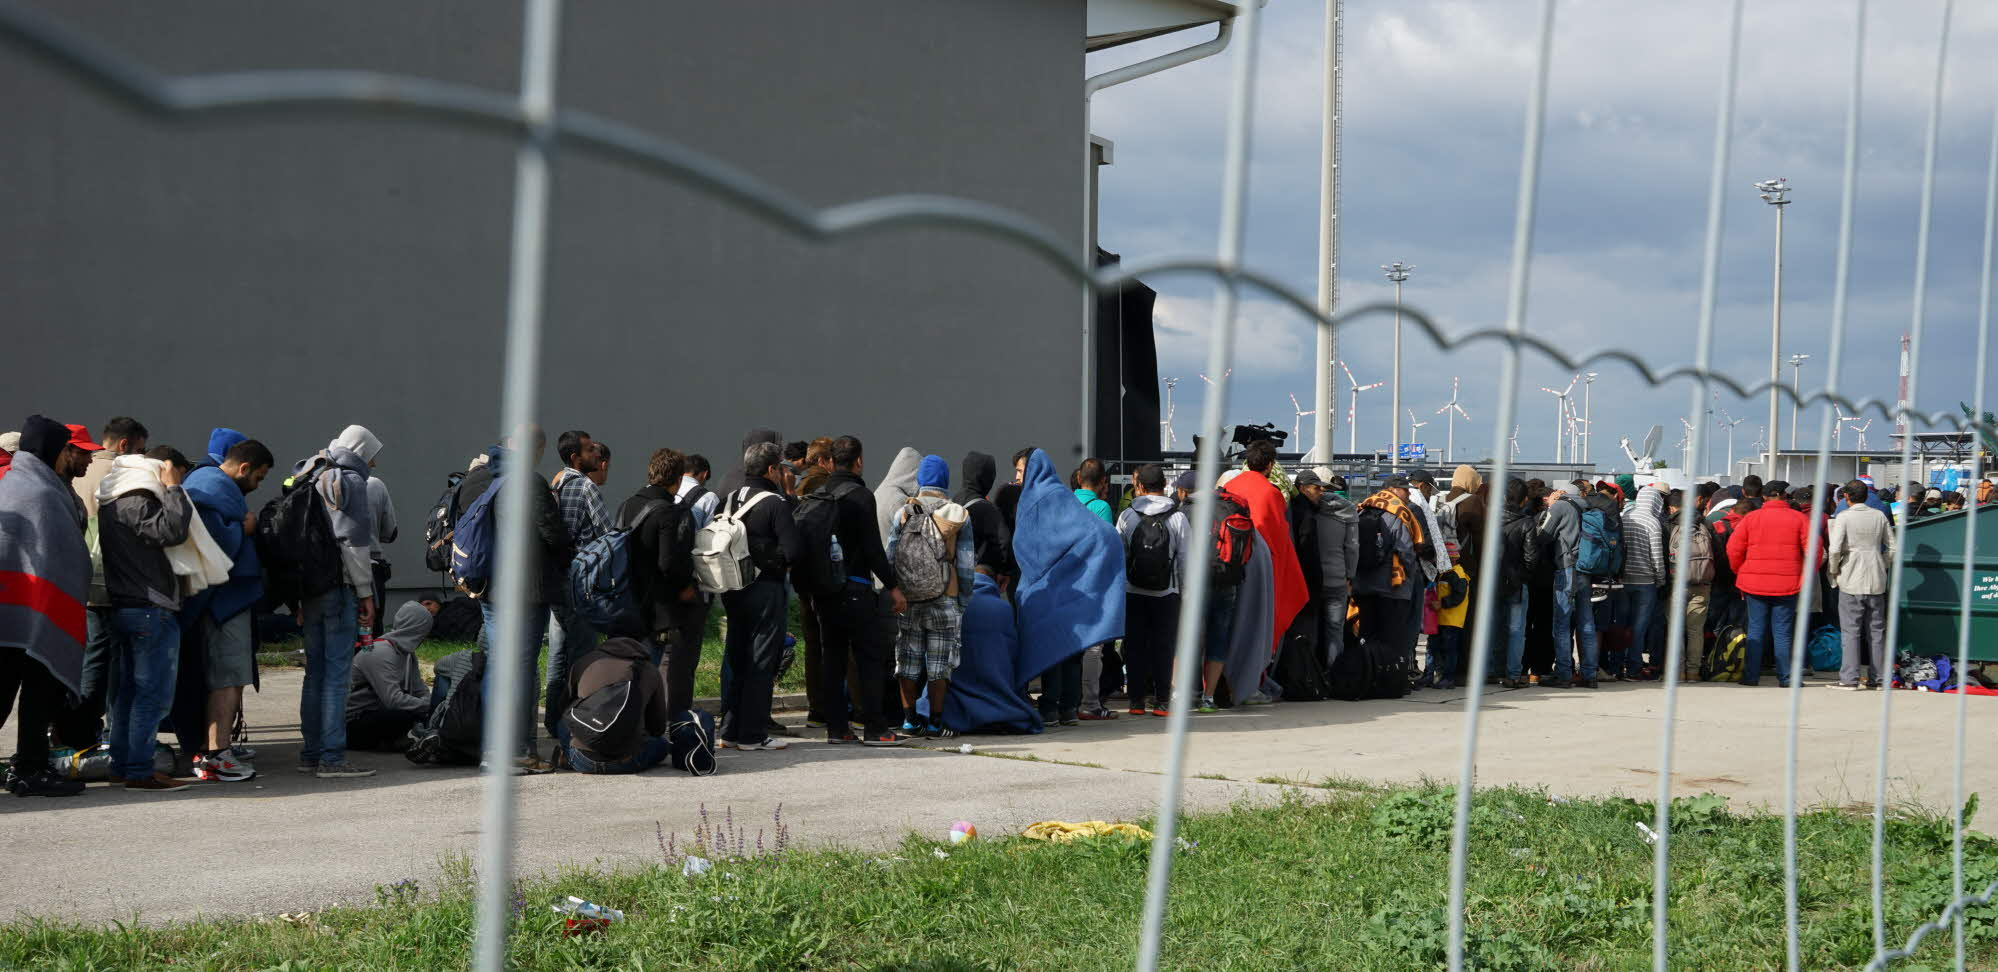 refugees queueing